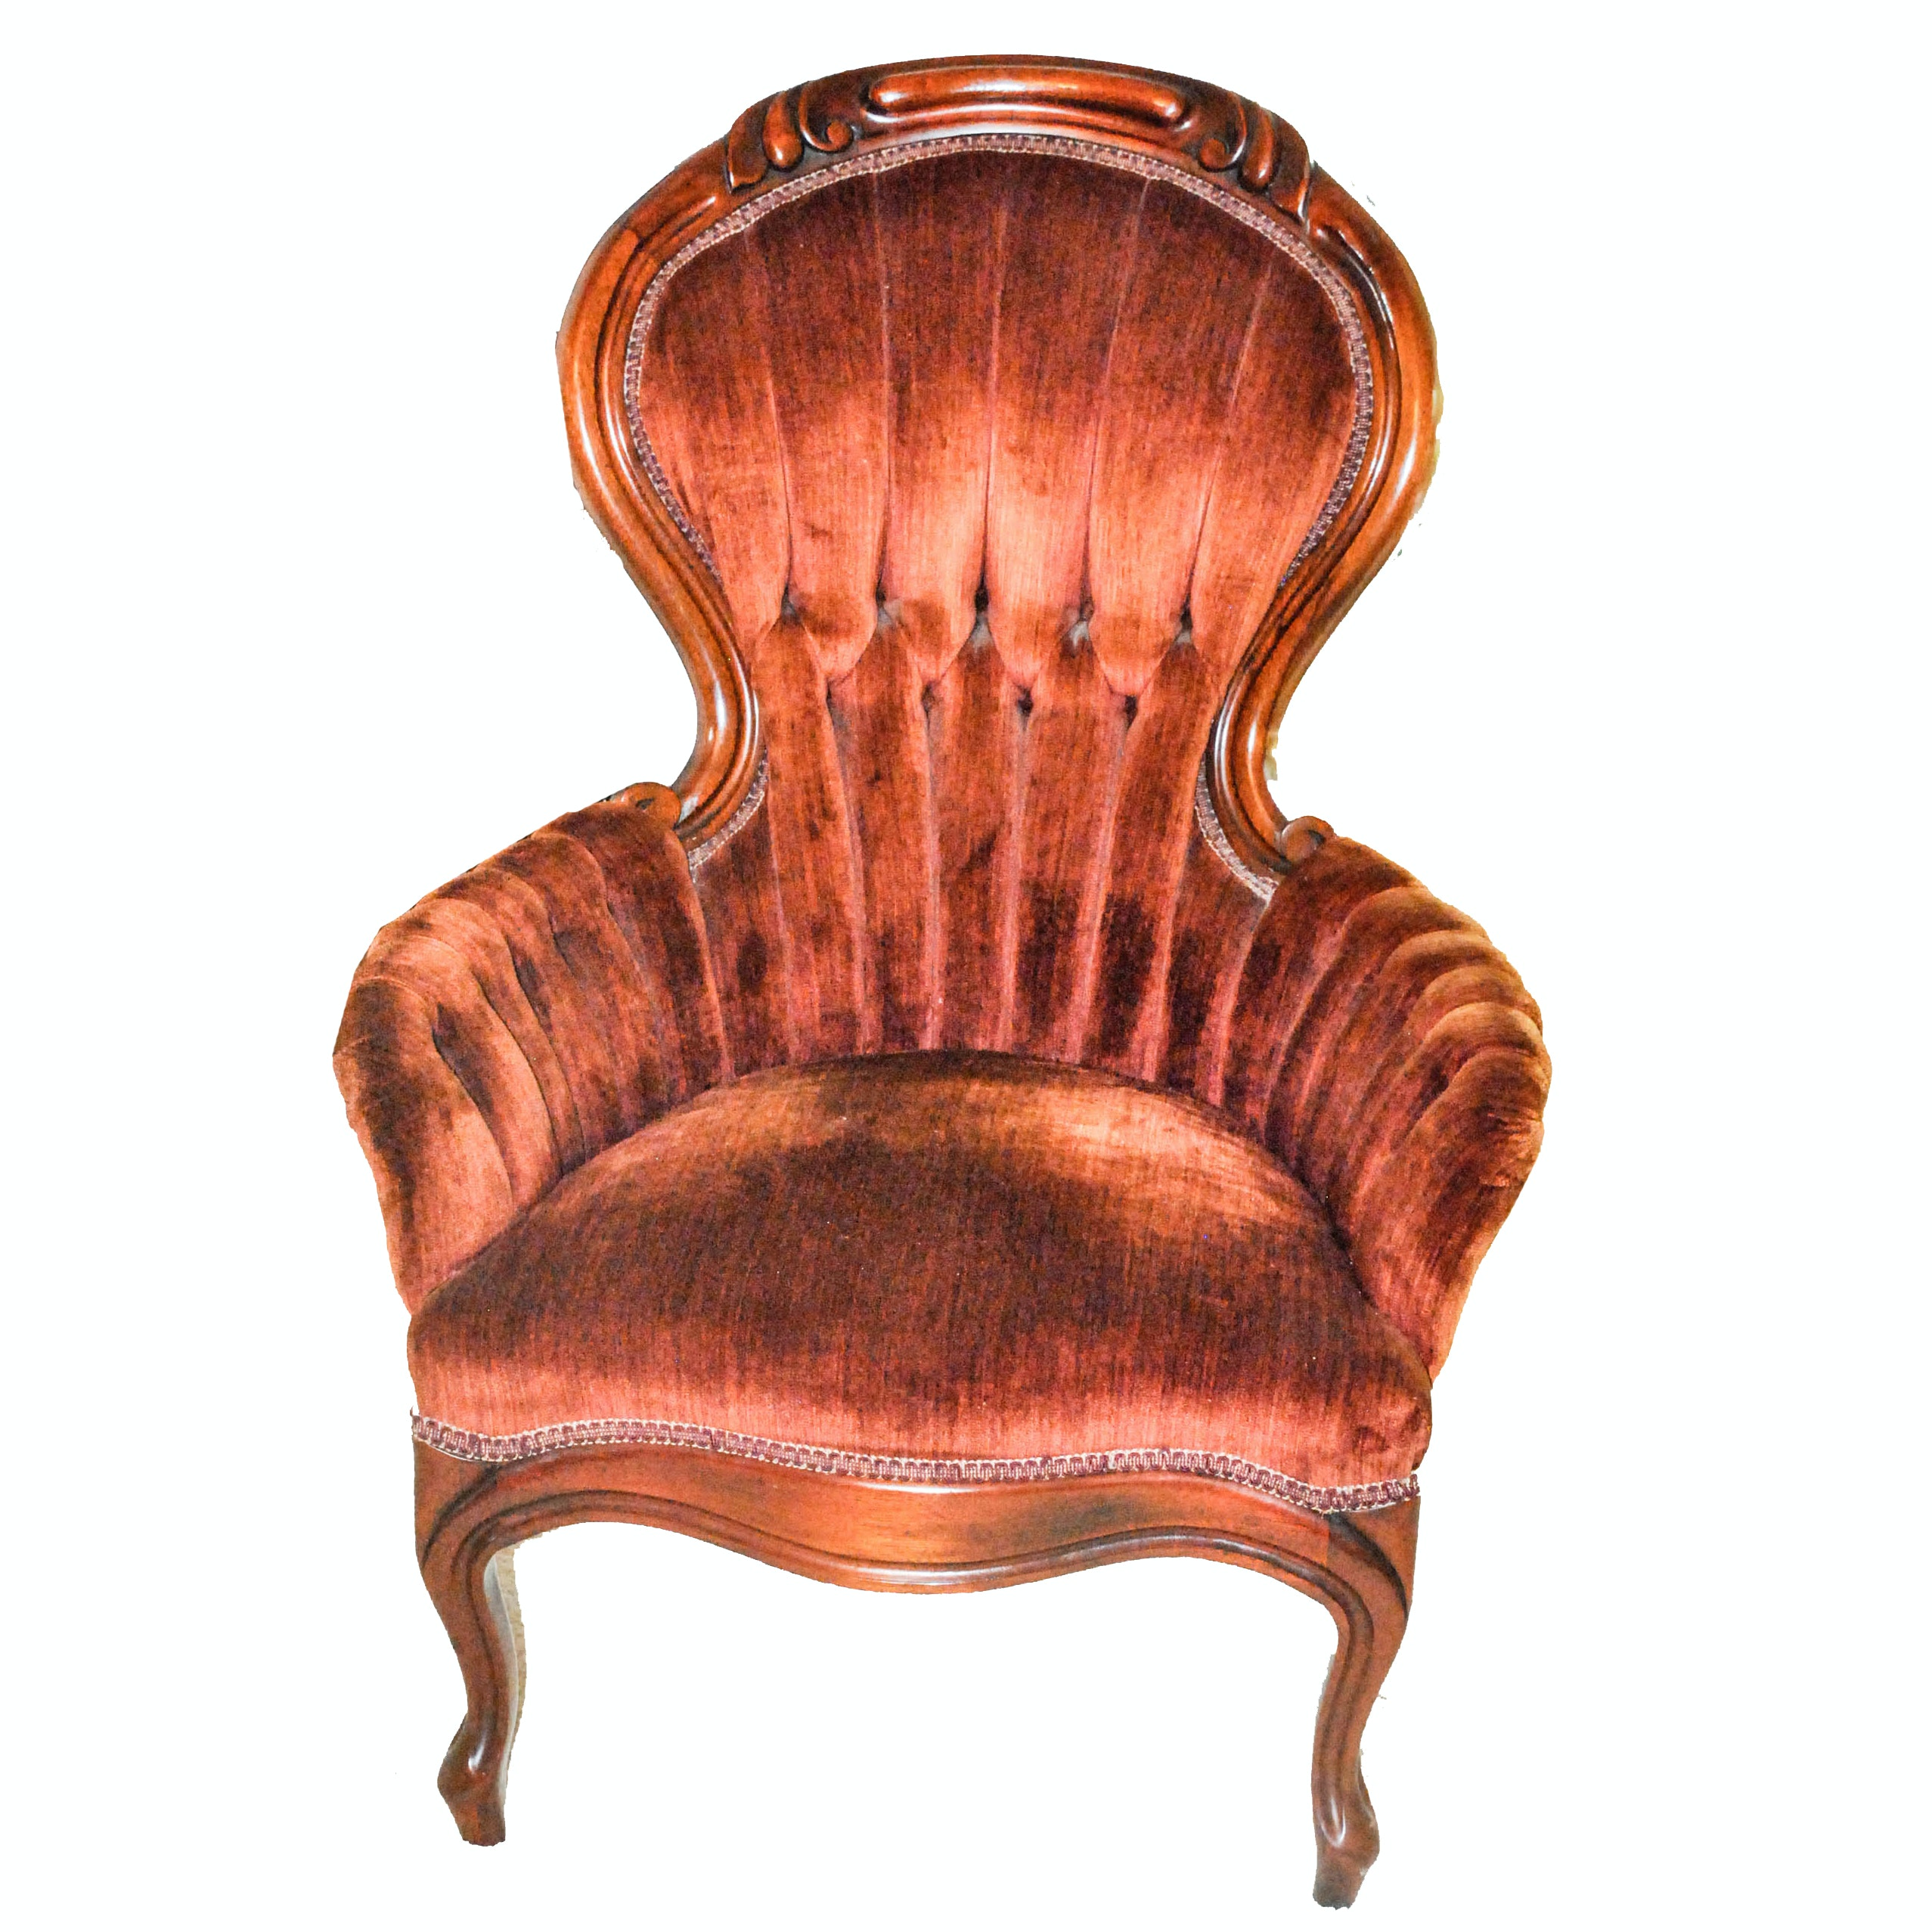 Vintage Victorian Style Upholstered Armchair by Carlton McLendon Furniture